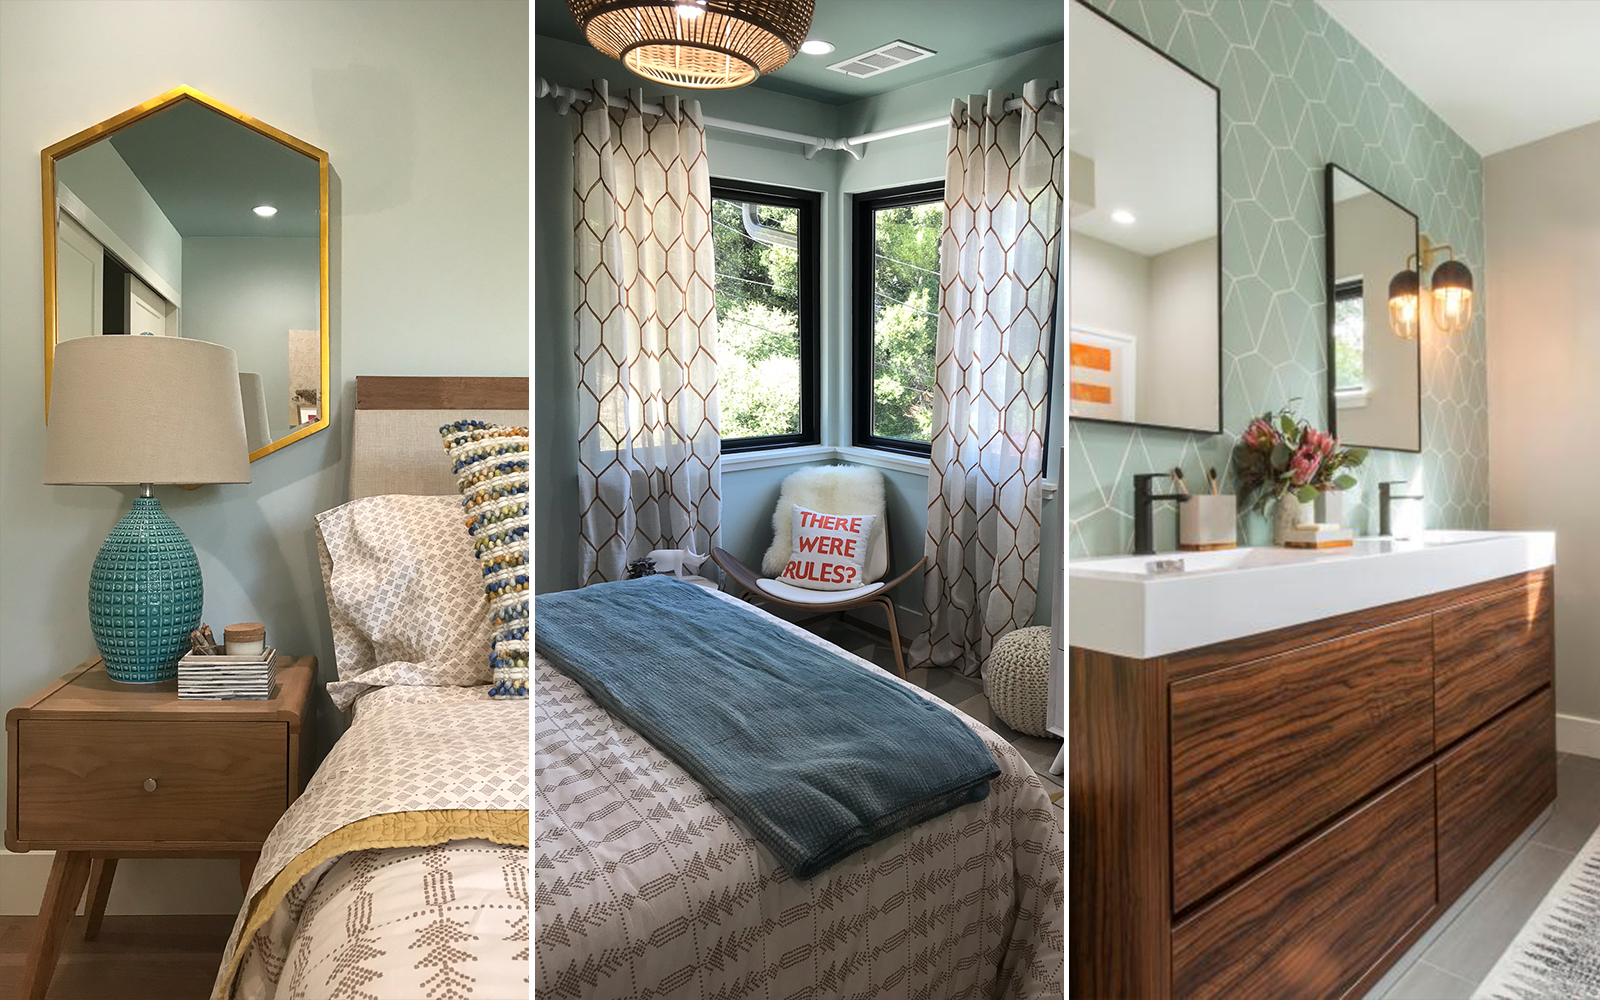 Photo collage showing a styled bedroom and bathroom for season 6 of Brother vs Brother.